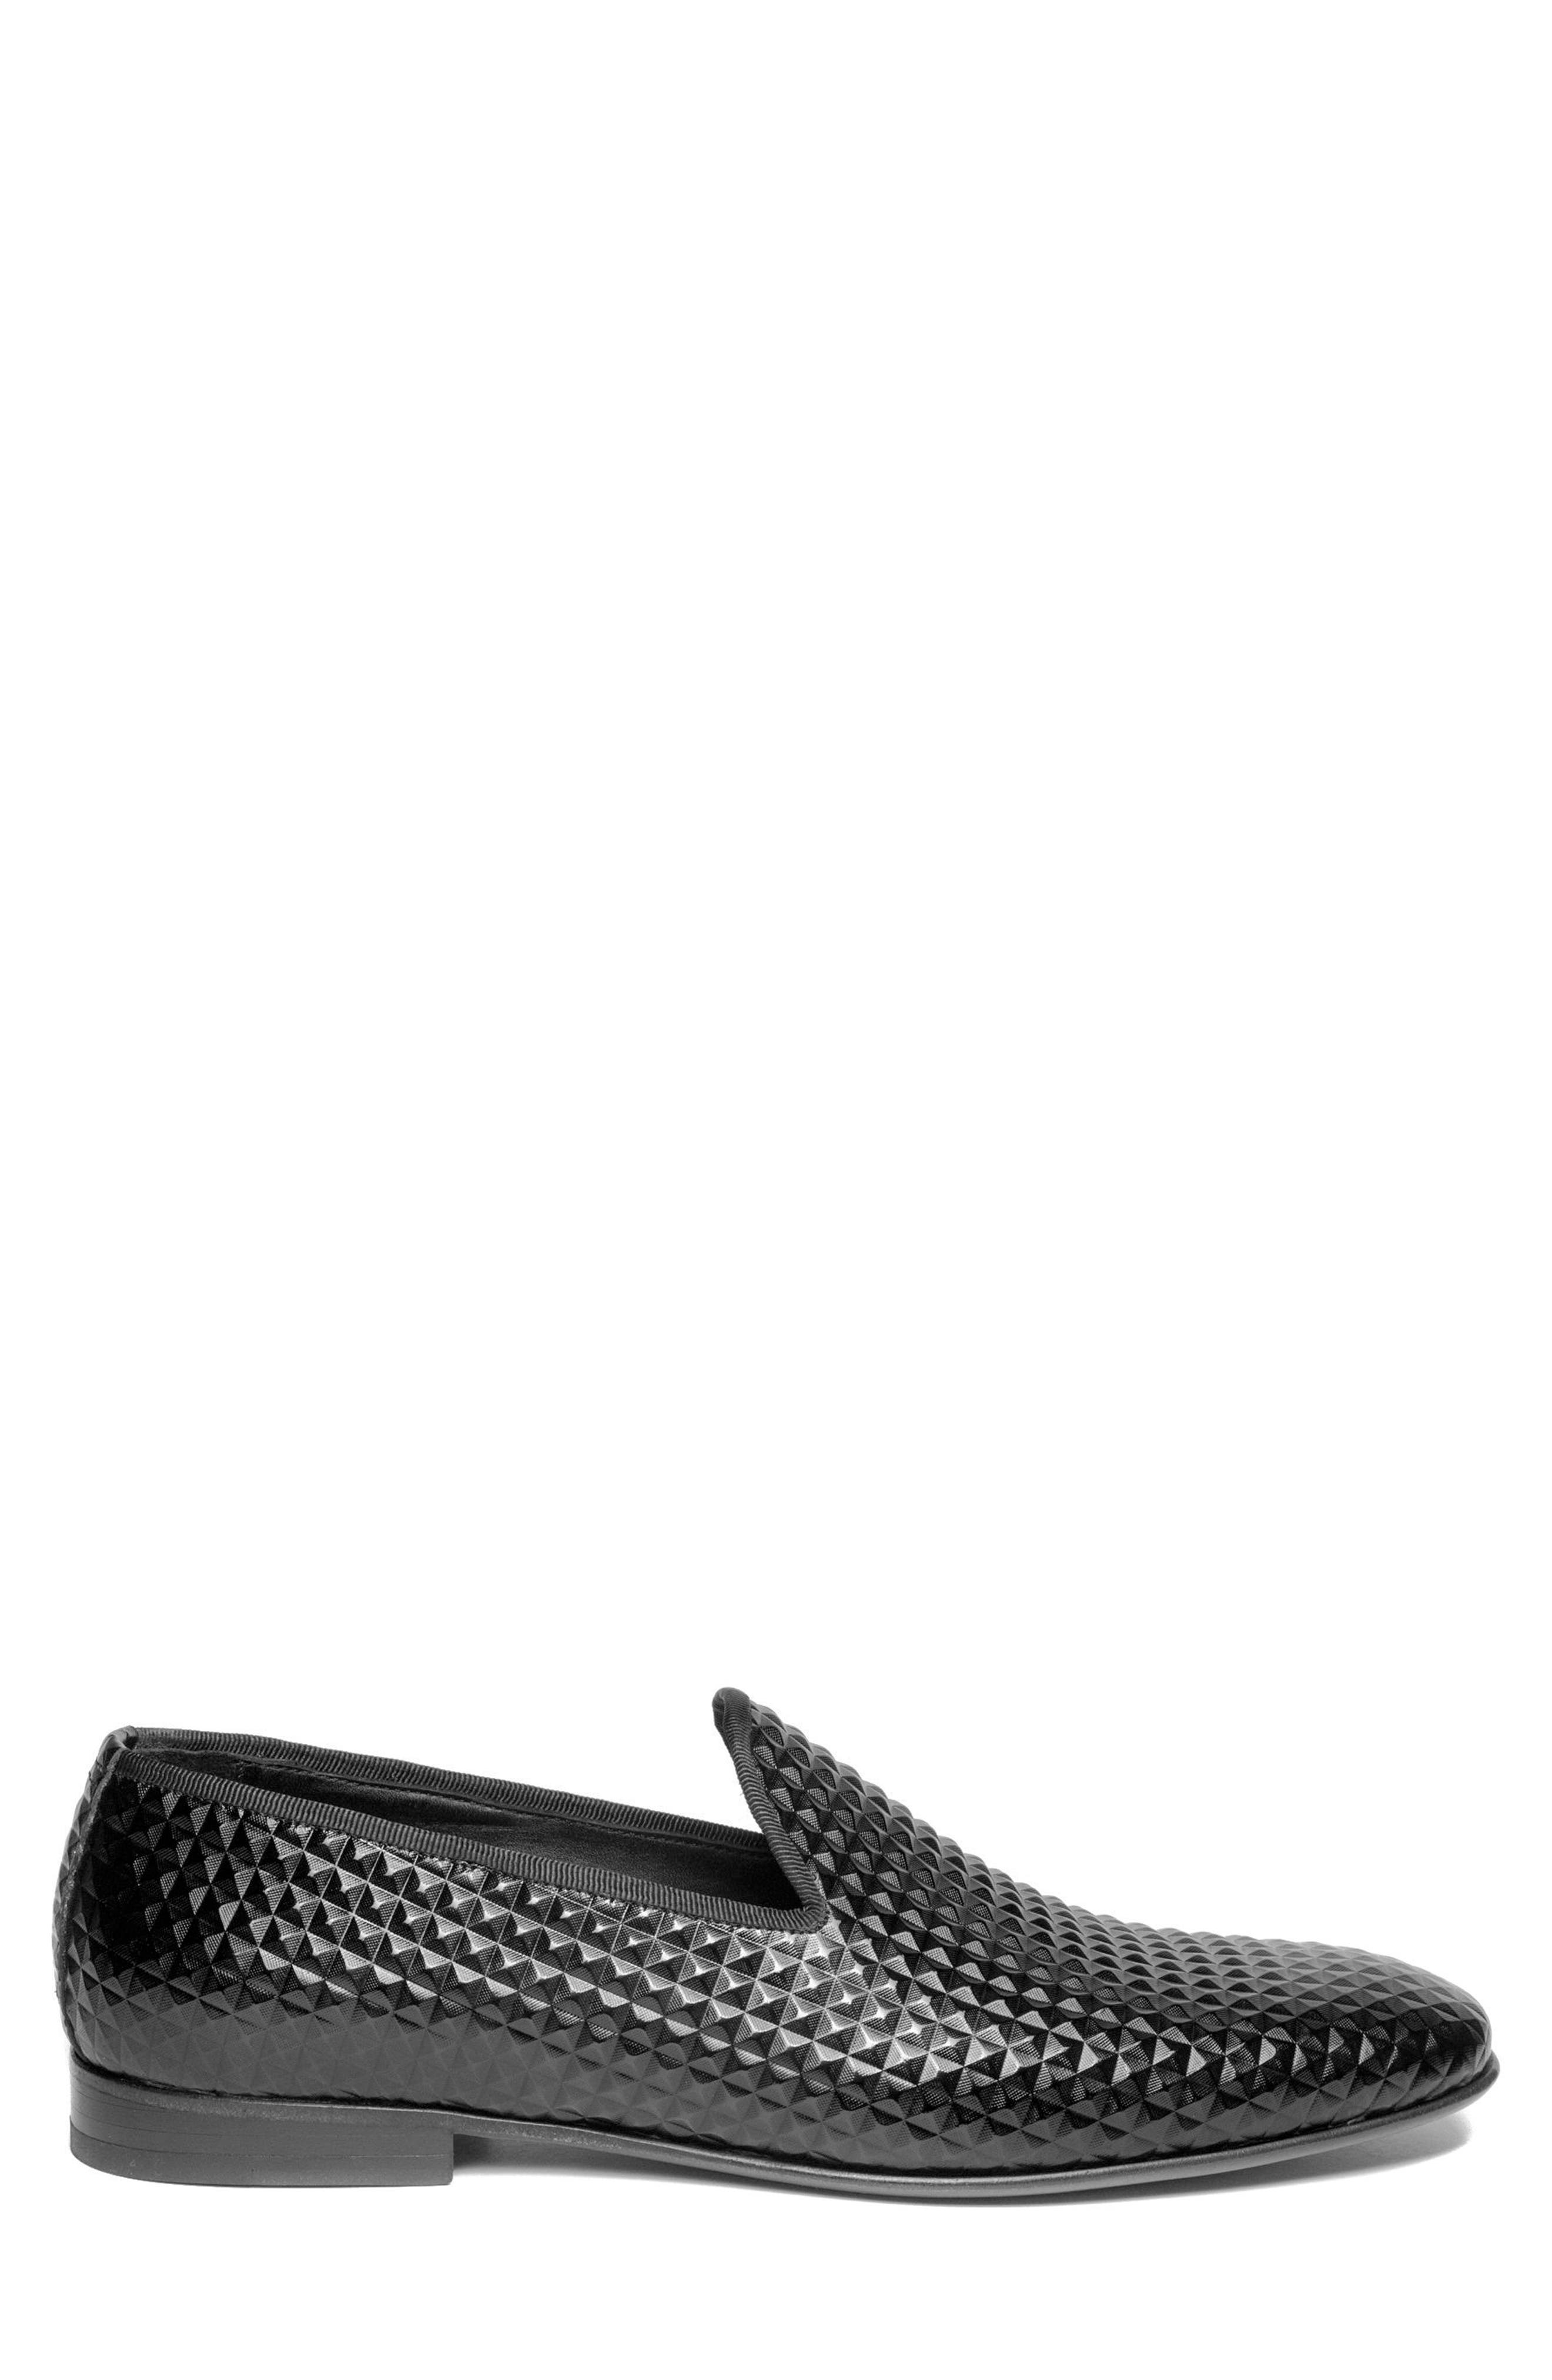 Hugh Pyramid Embossed Venetian Loafer,                             Alternate thumbnail 3, color,                             001